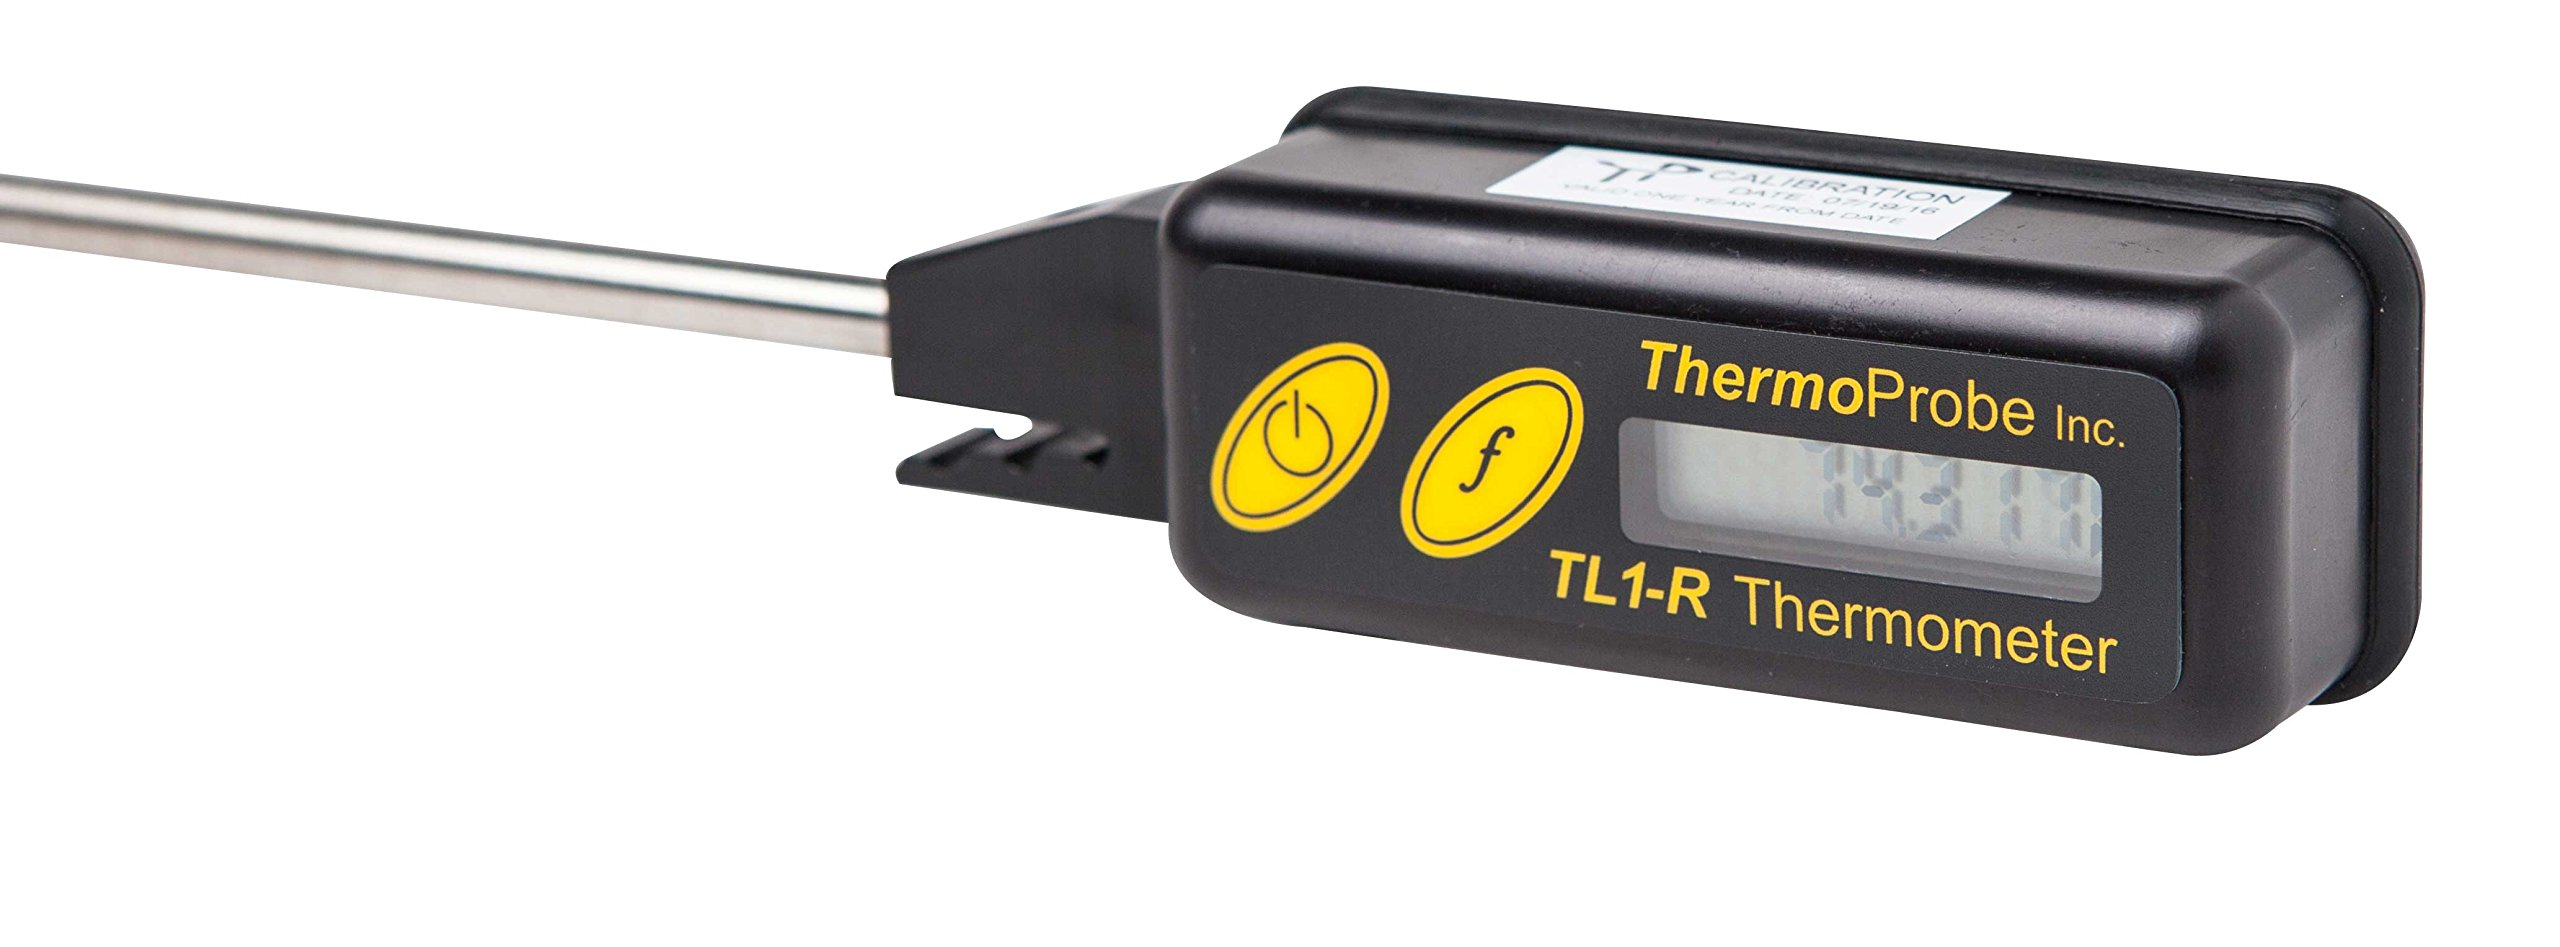 ThermoProbe TL-1R High Precision Digital Thermometer with 8'' Stem and NIST traceable, ISO/IEC 17025 Accredited Report of Calibration in Fahrenheit